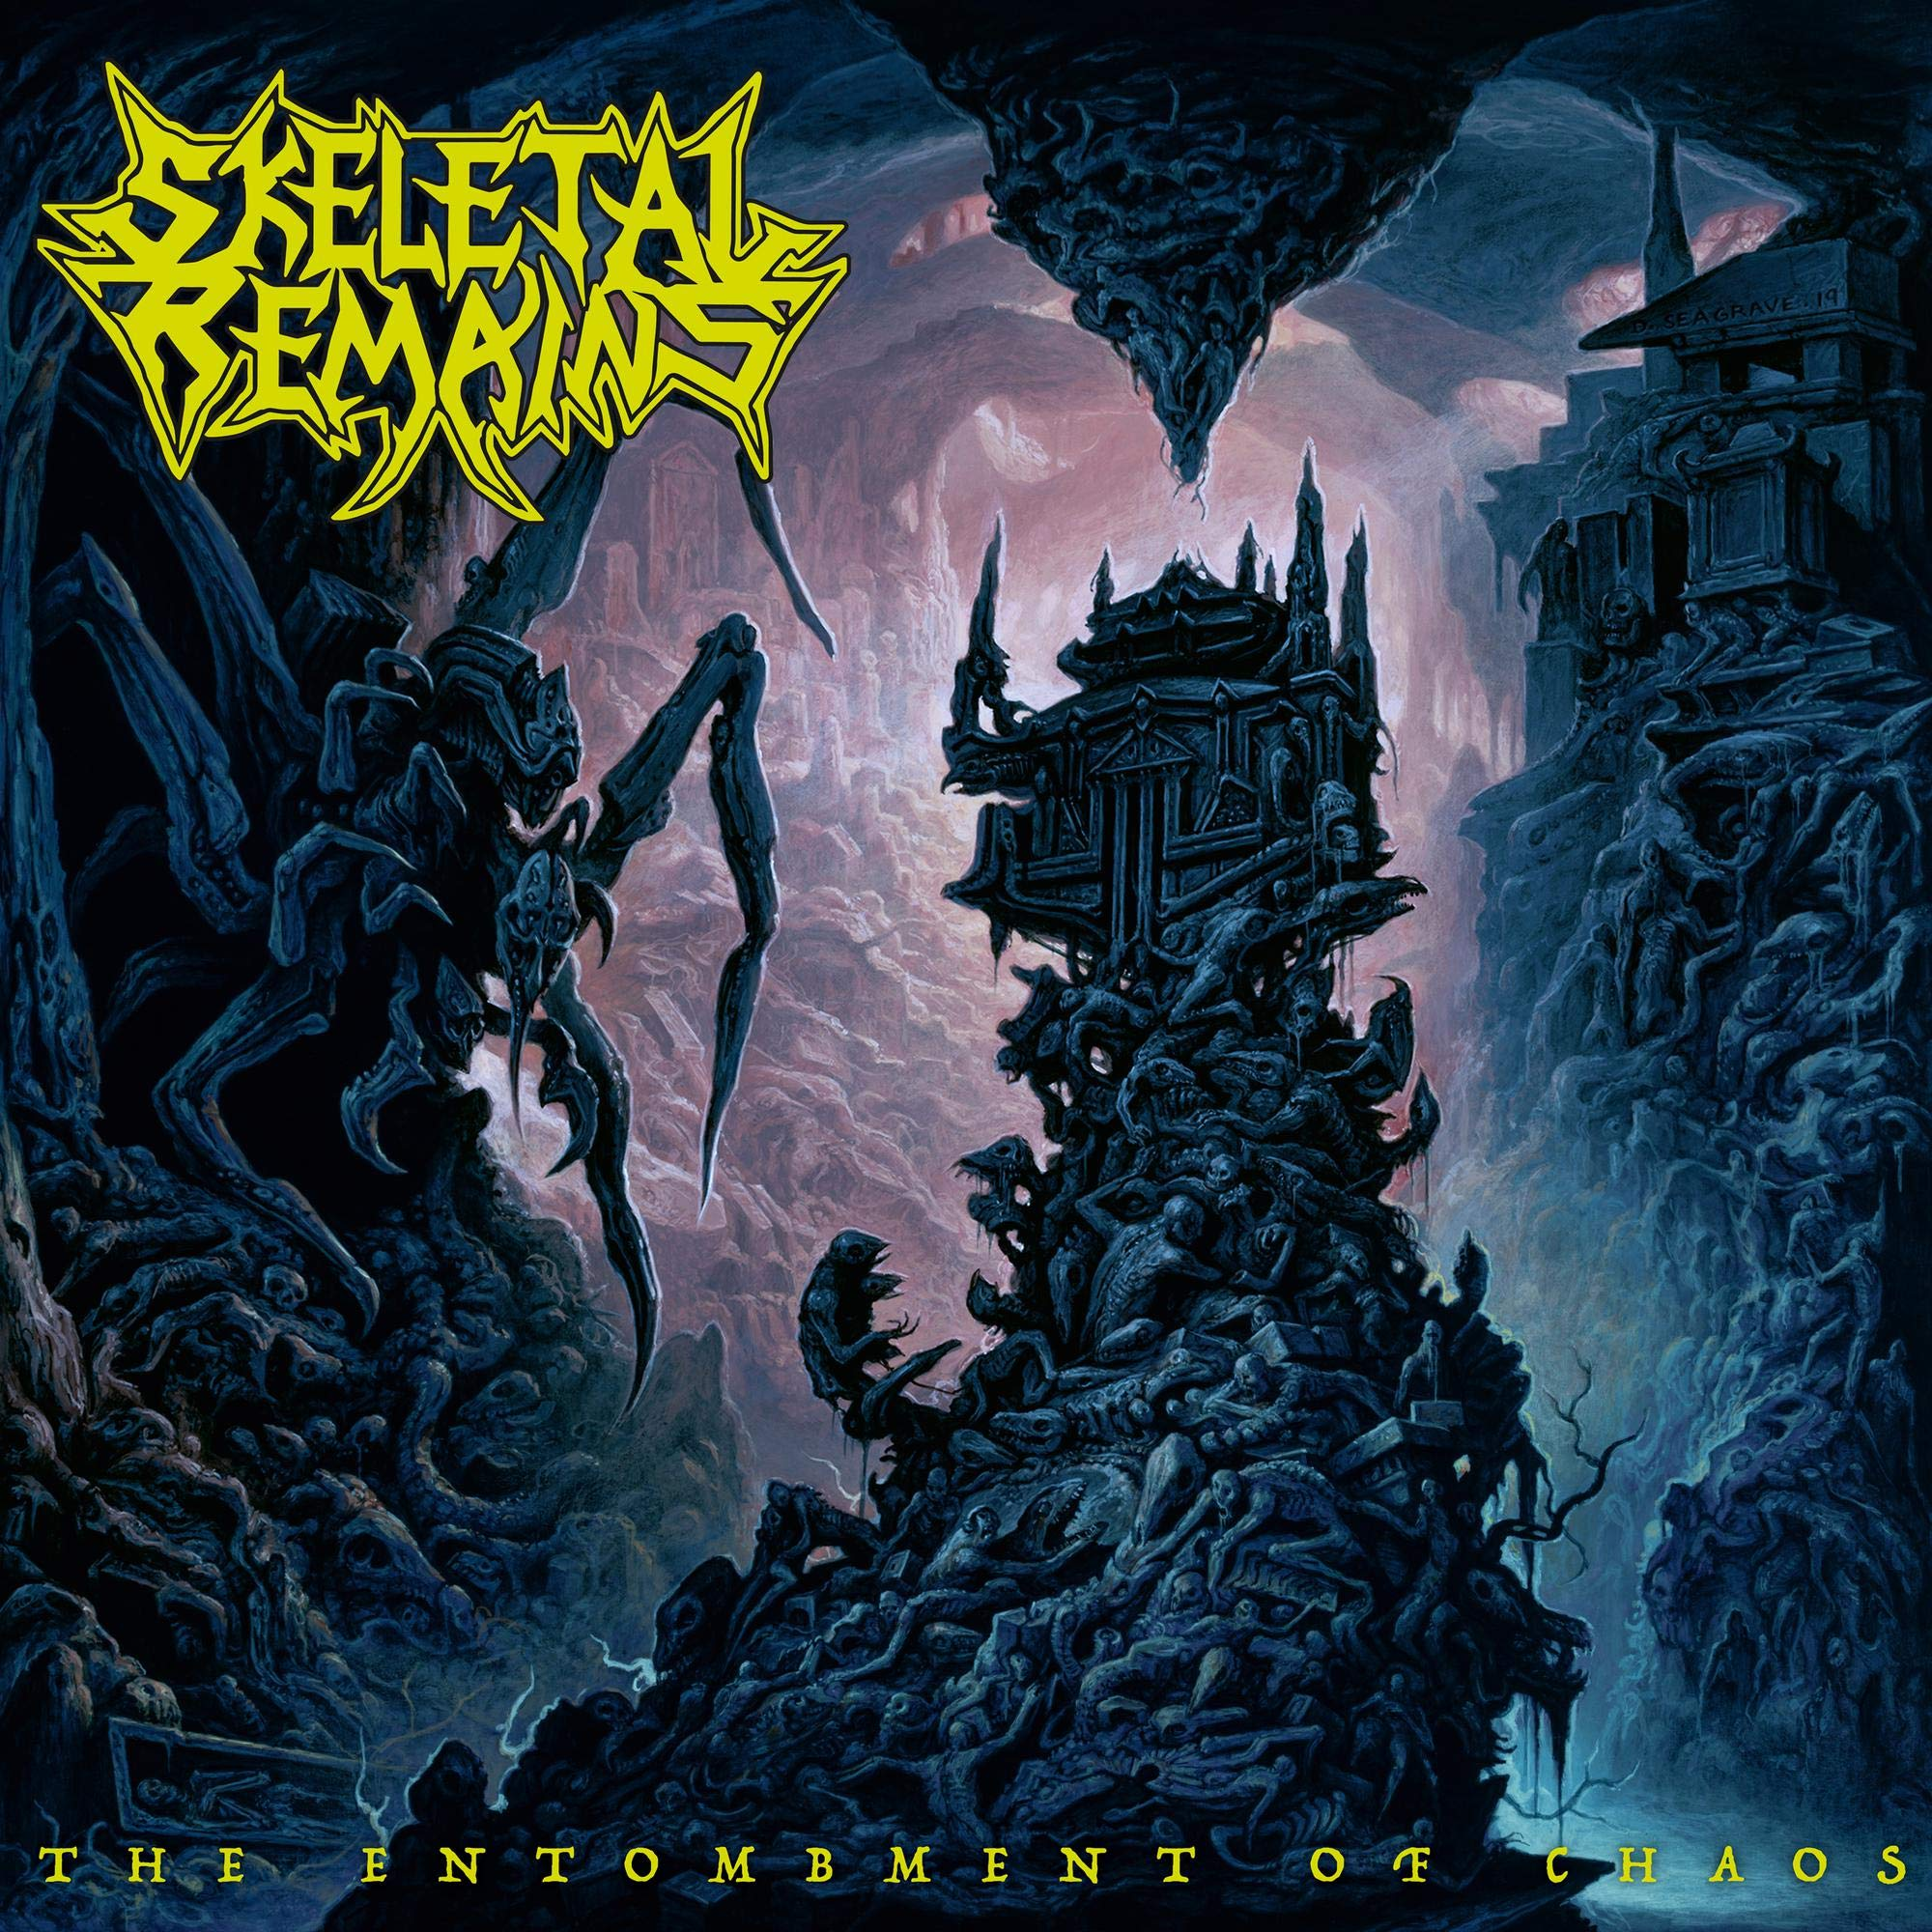 Skeletal Remains - The Entombment Of Chaos (2020) [FLAC] Download